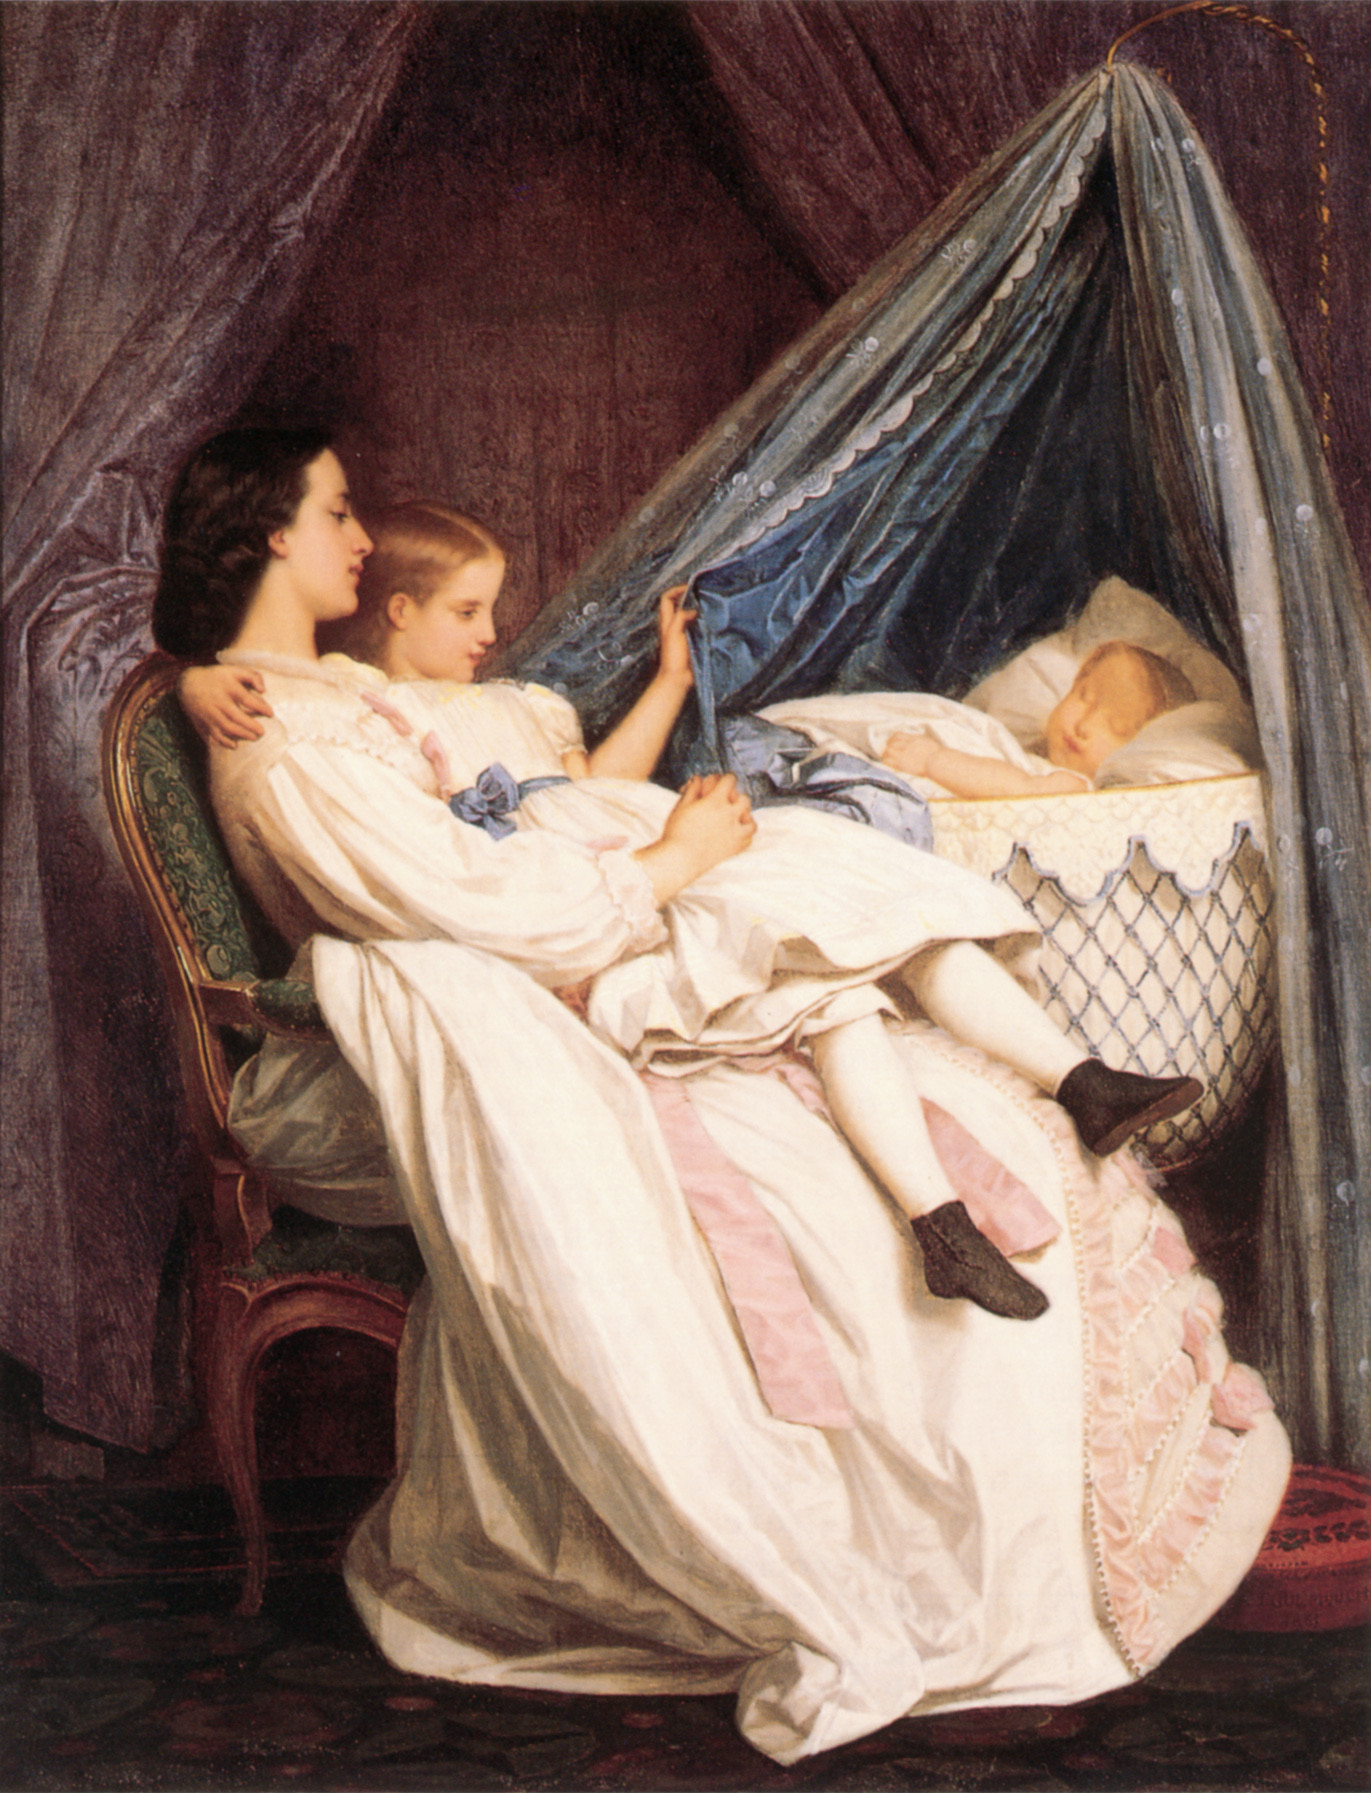 The New Arrival :: Auguste Toulmouche - Woman and child in painting and art ôîòî